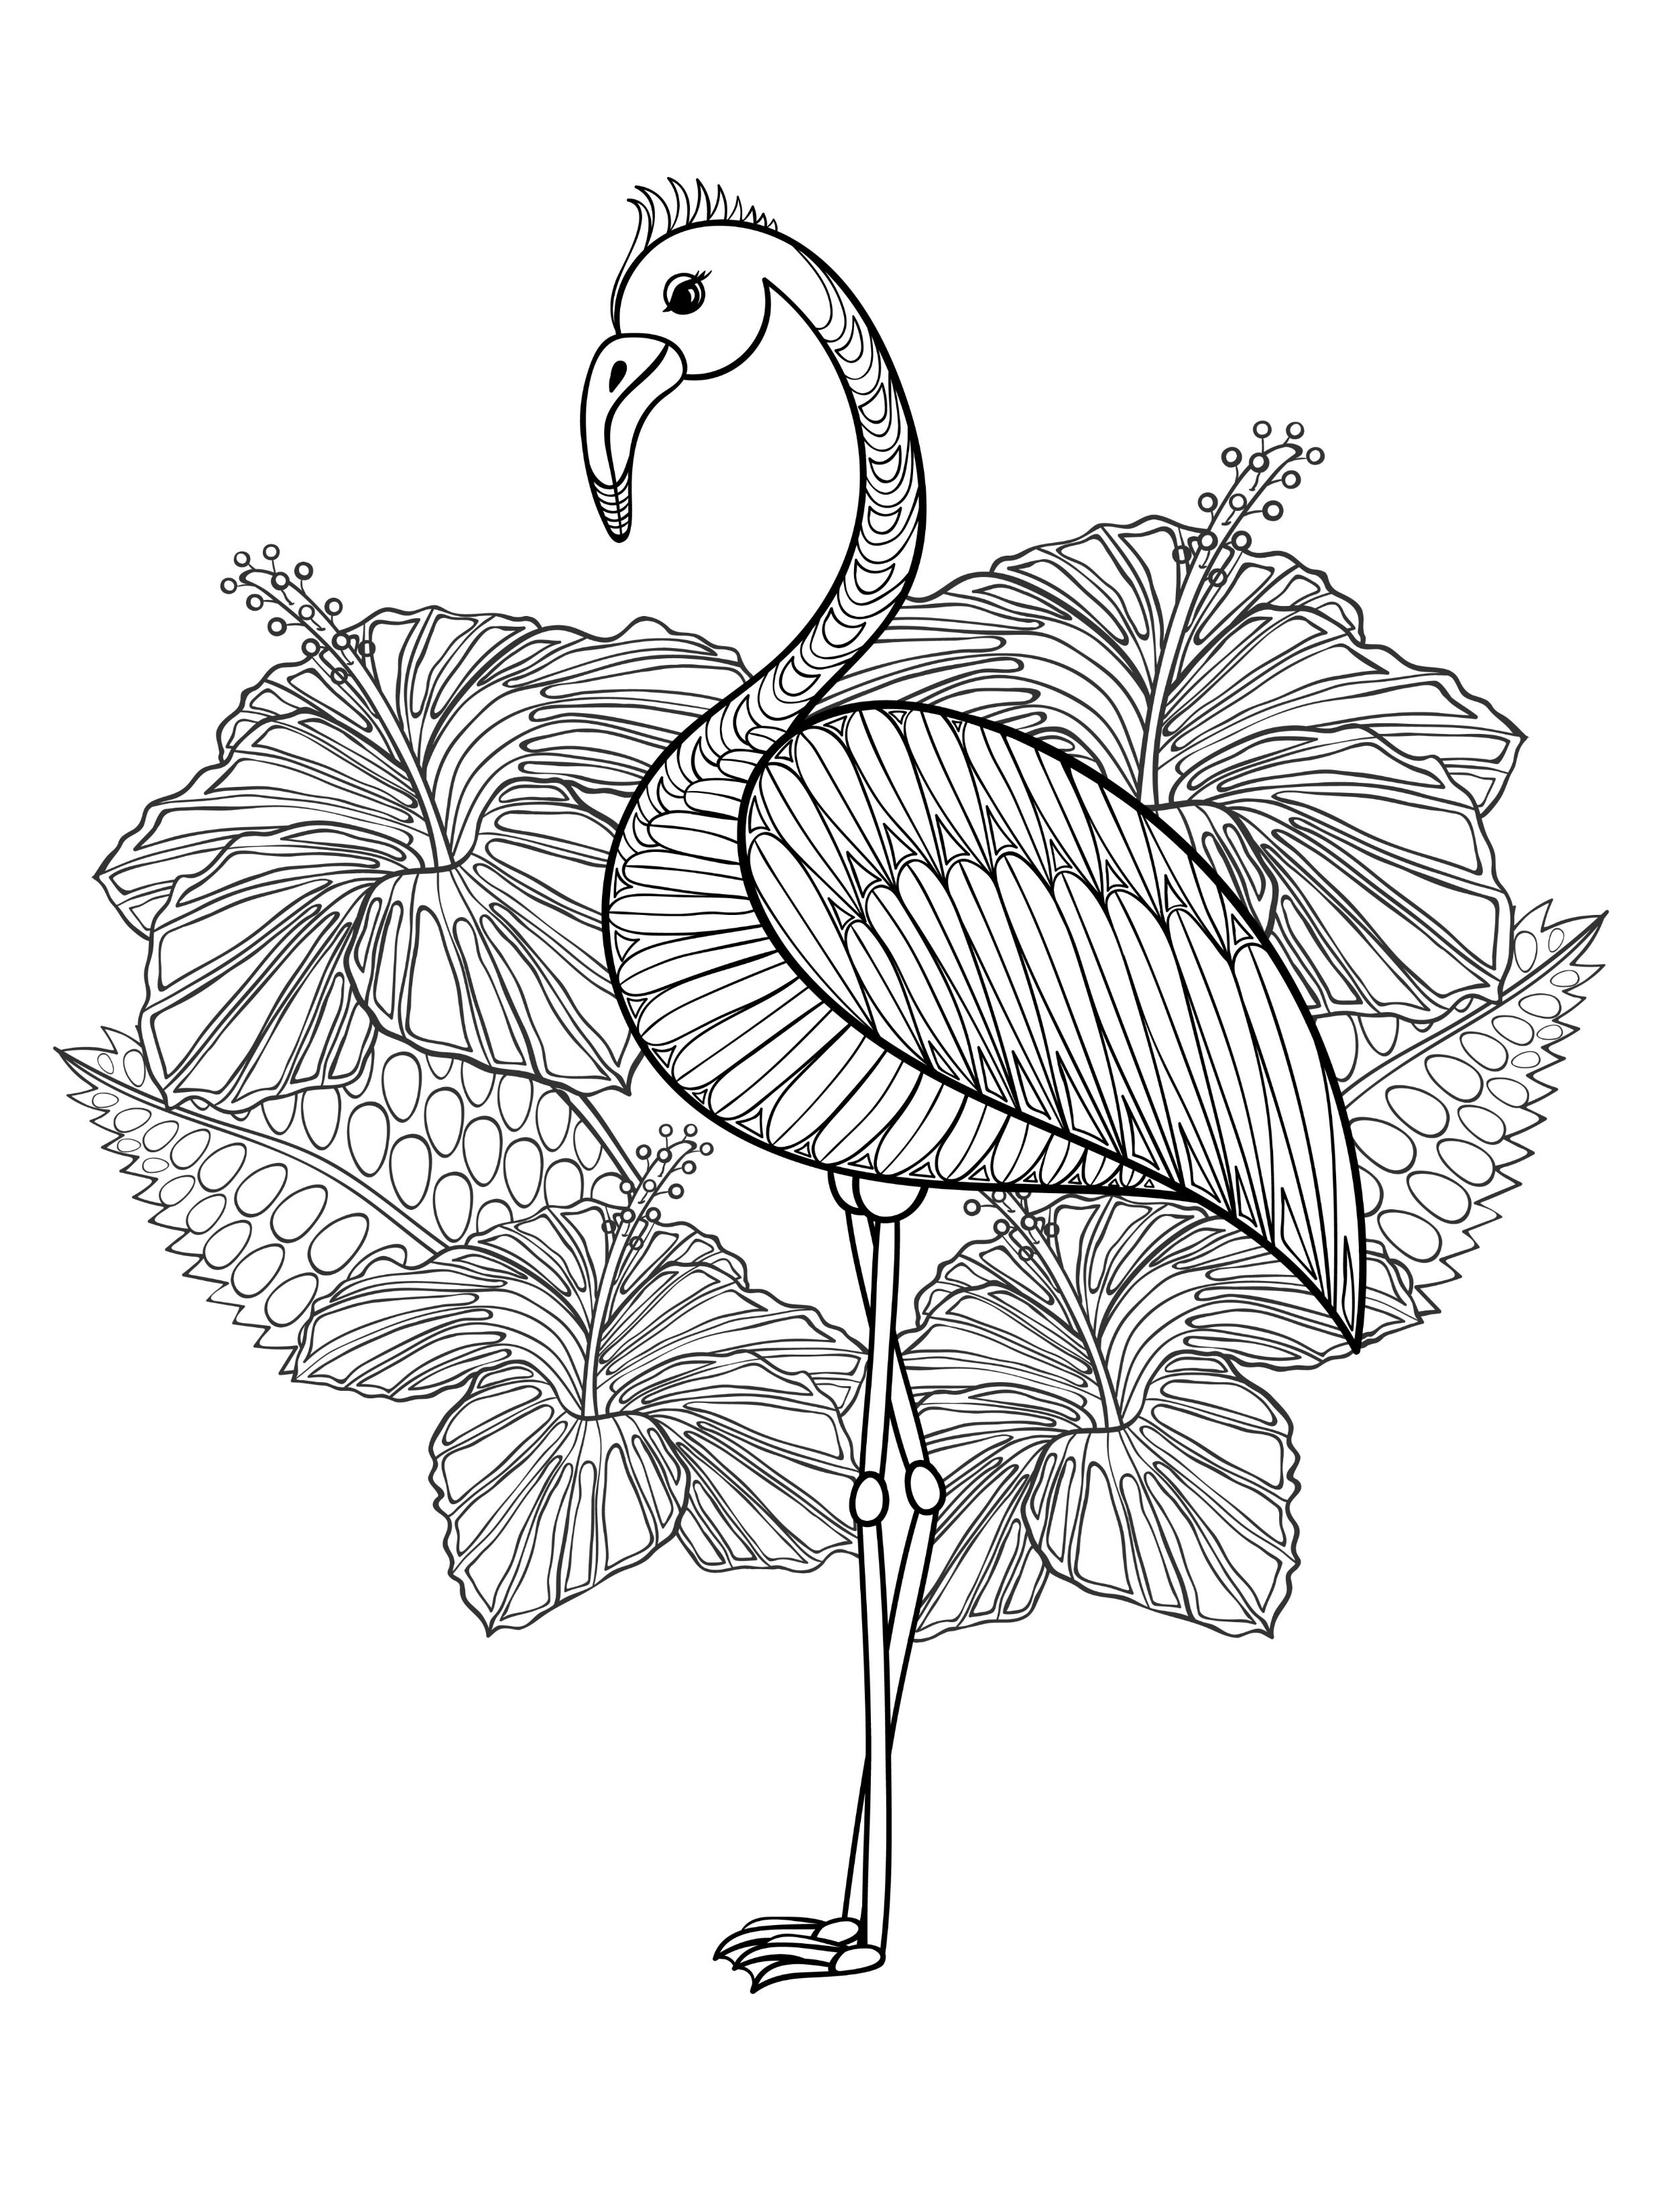 Free coloring pages home - 20 Gorgeous Free Printable Adult Coloring Pages